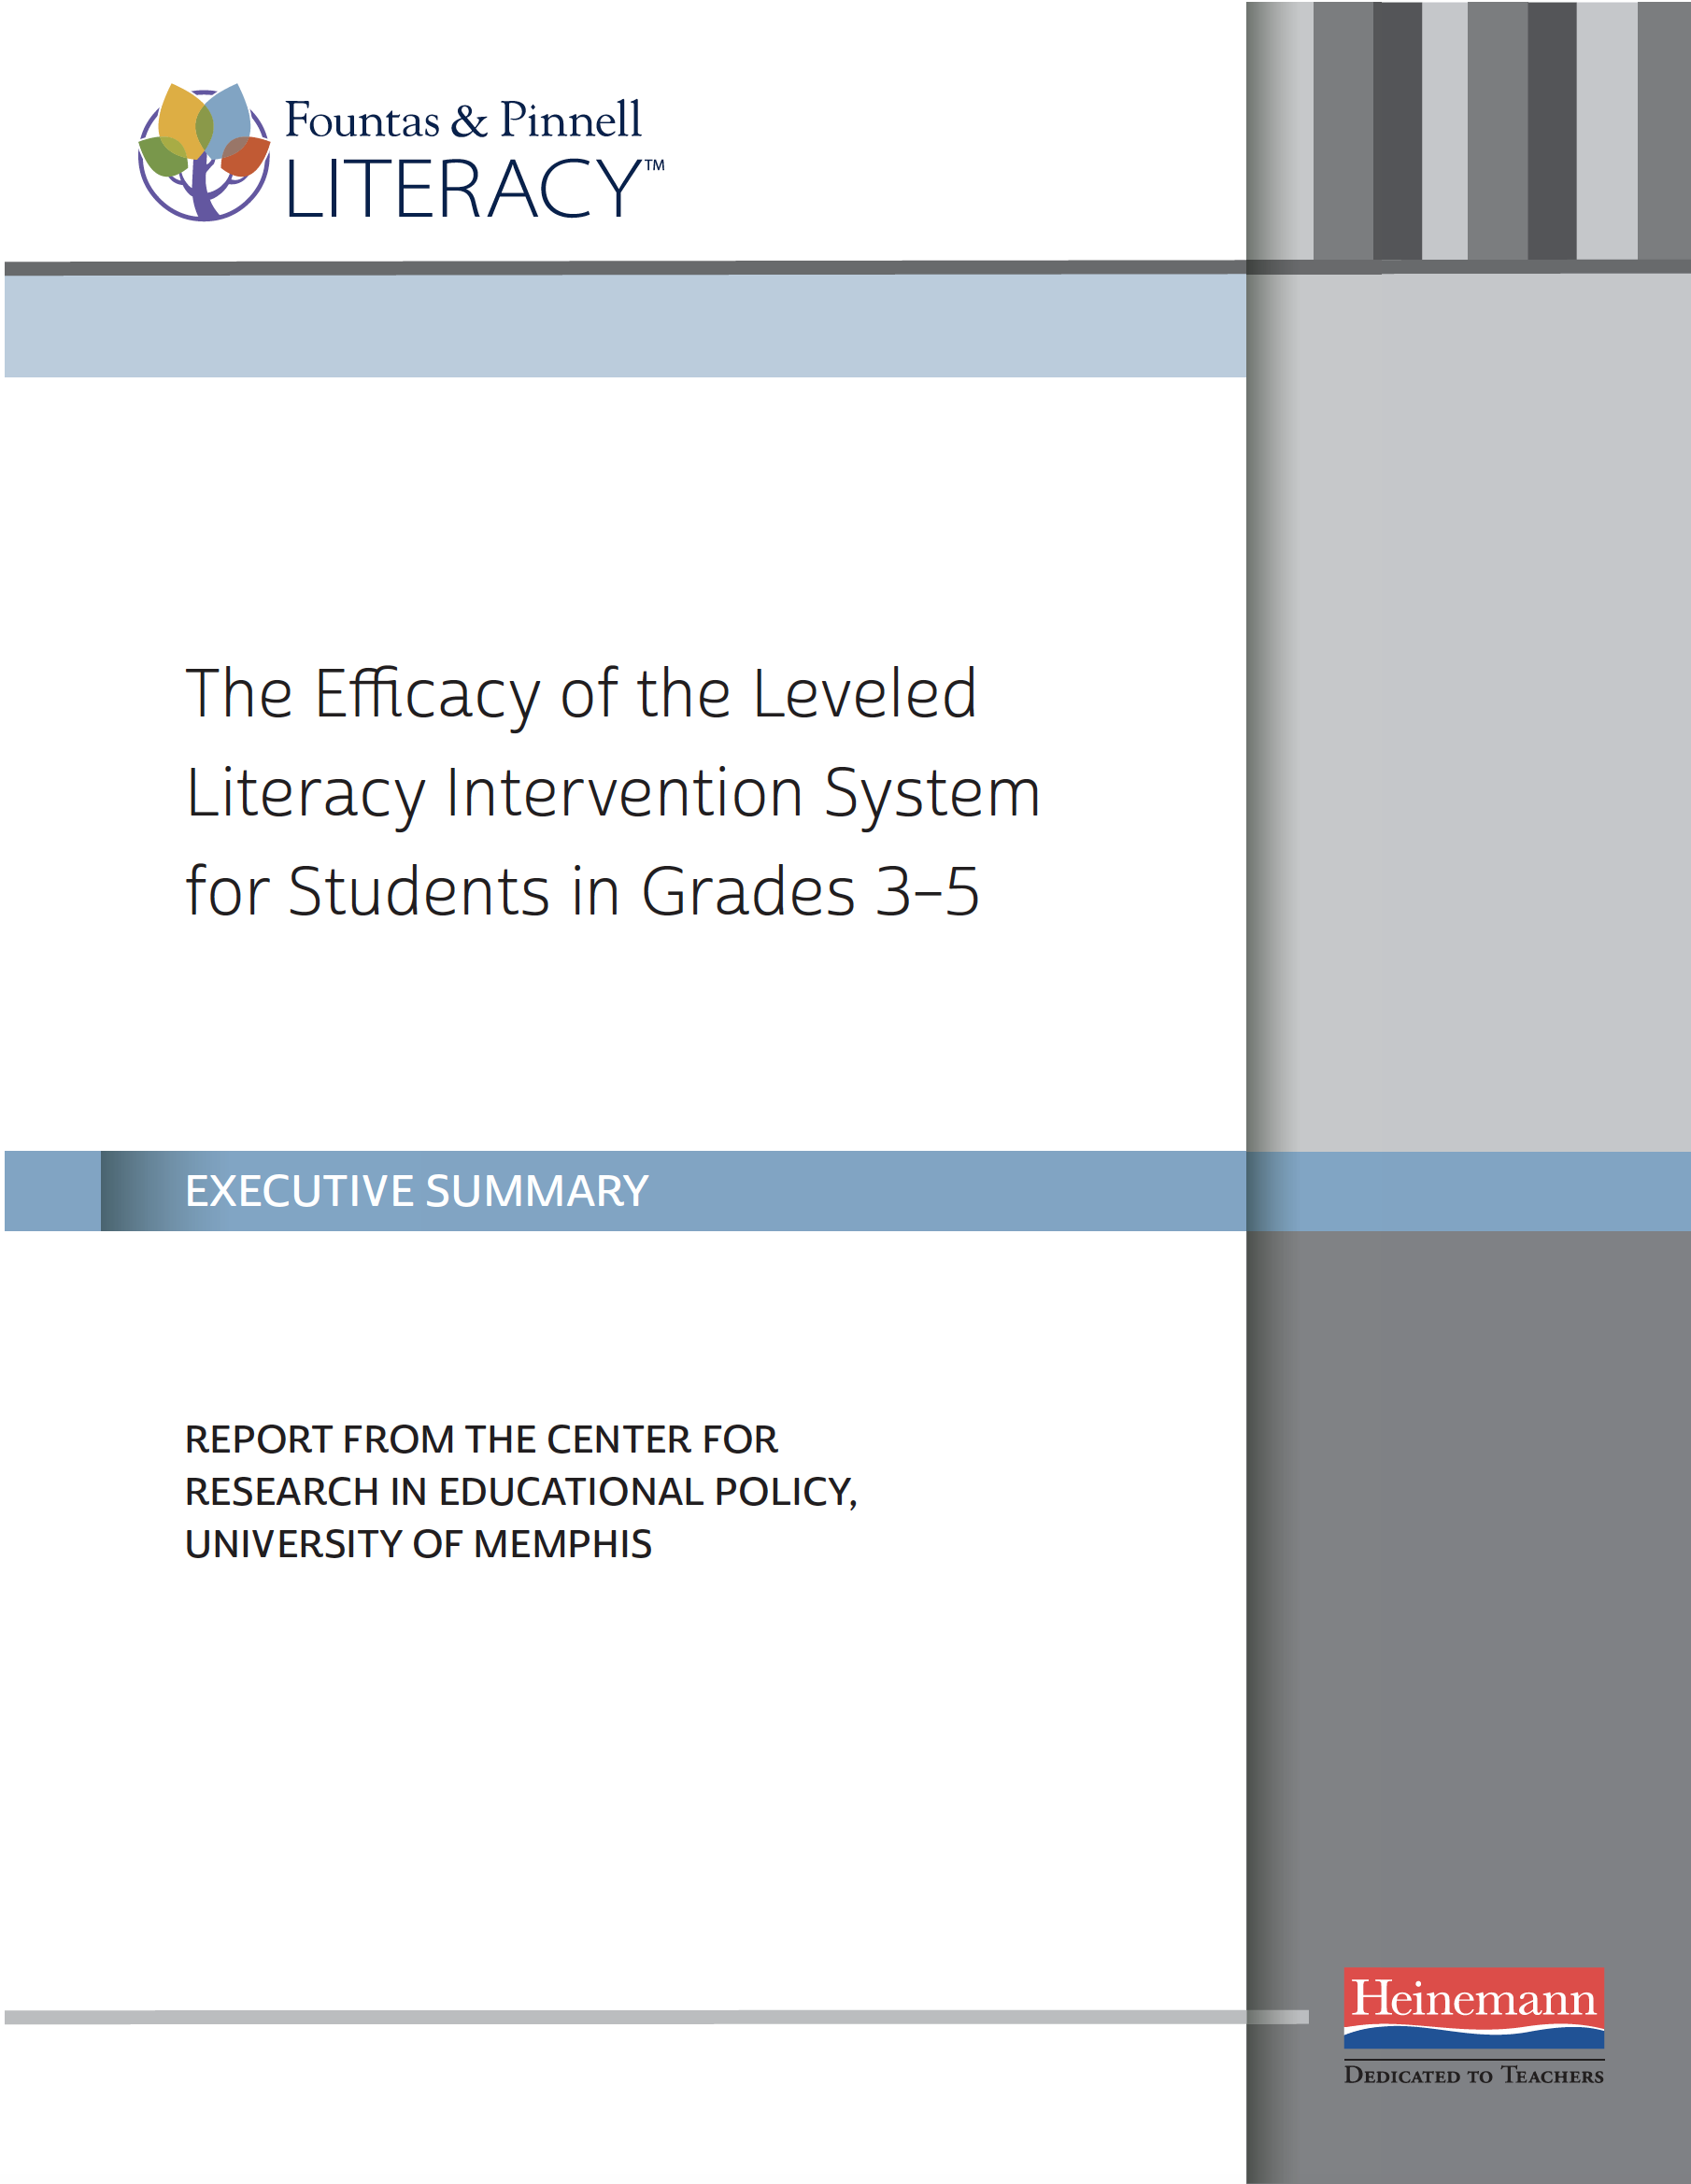 LLI Grades 3-5 Efficacy Study—Executive Summary